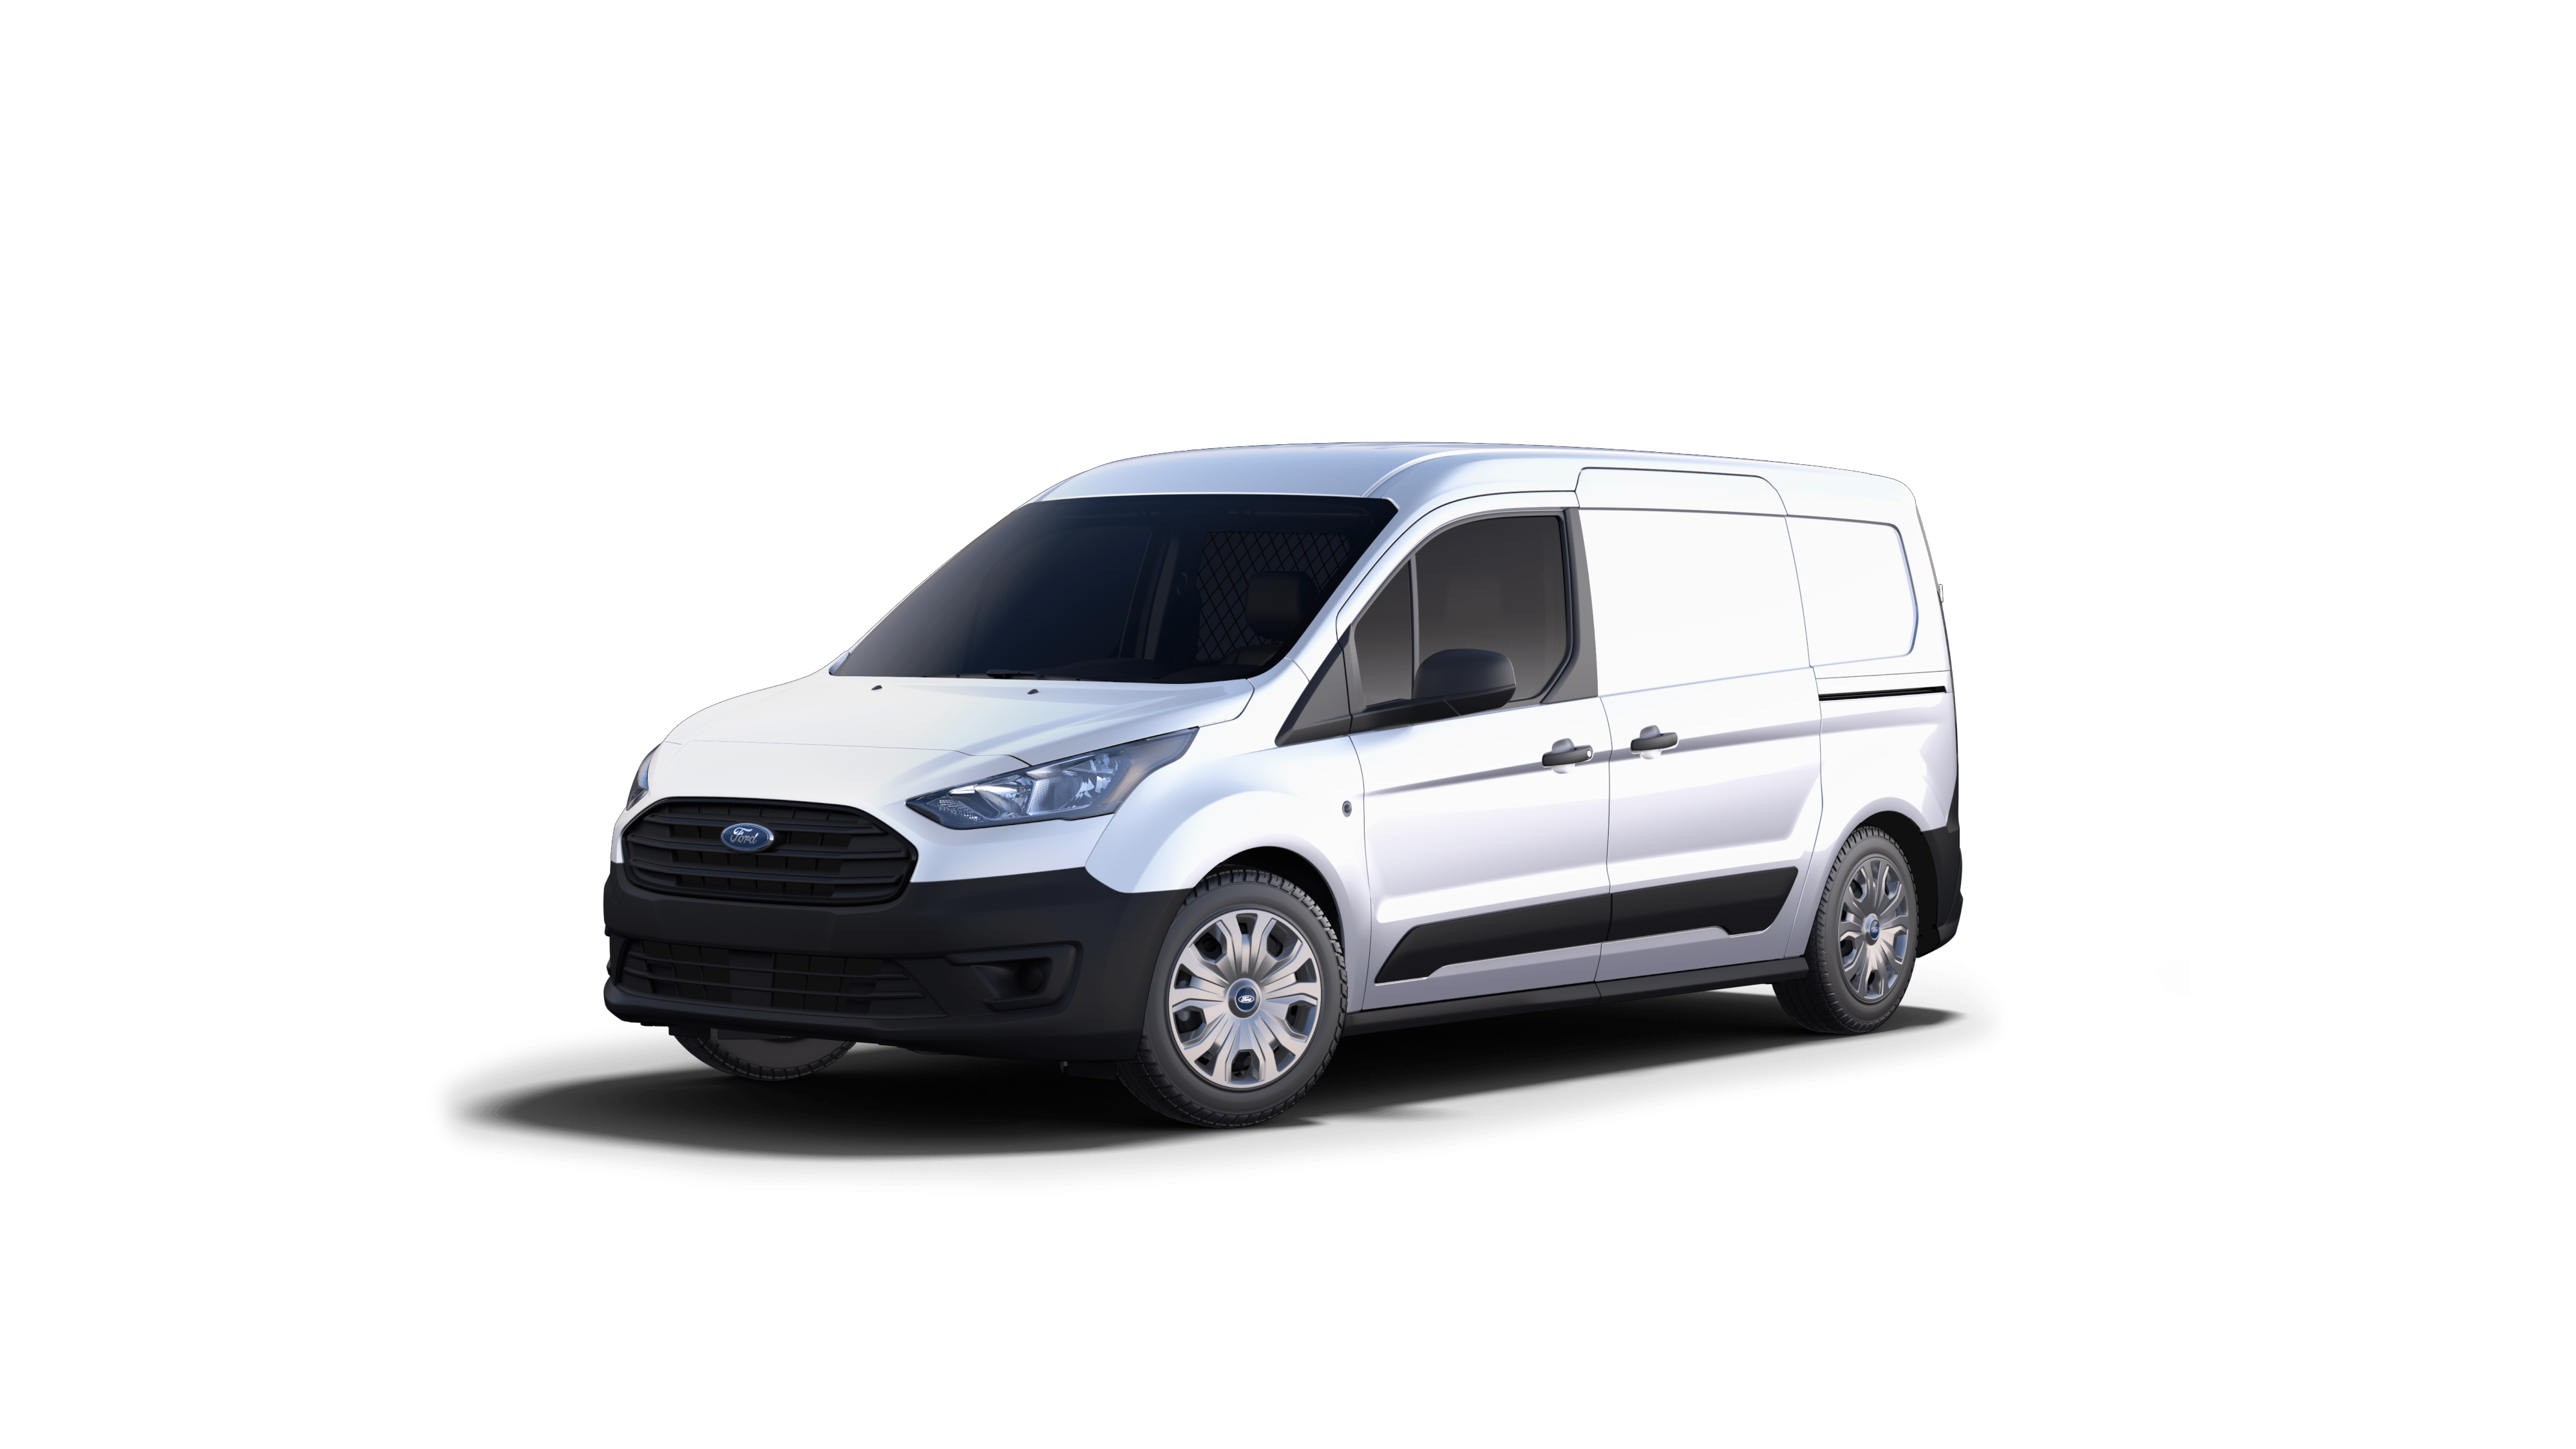 2019 ford transit connect van for sale in newport nm0ls7e2xk1396393 varney ford inc